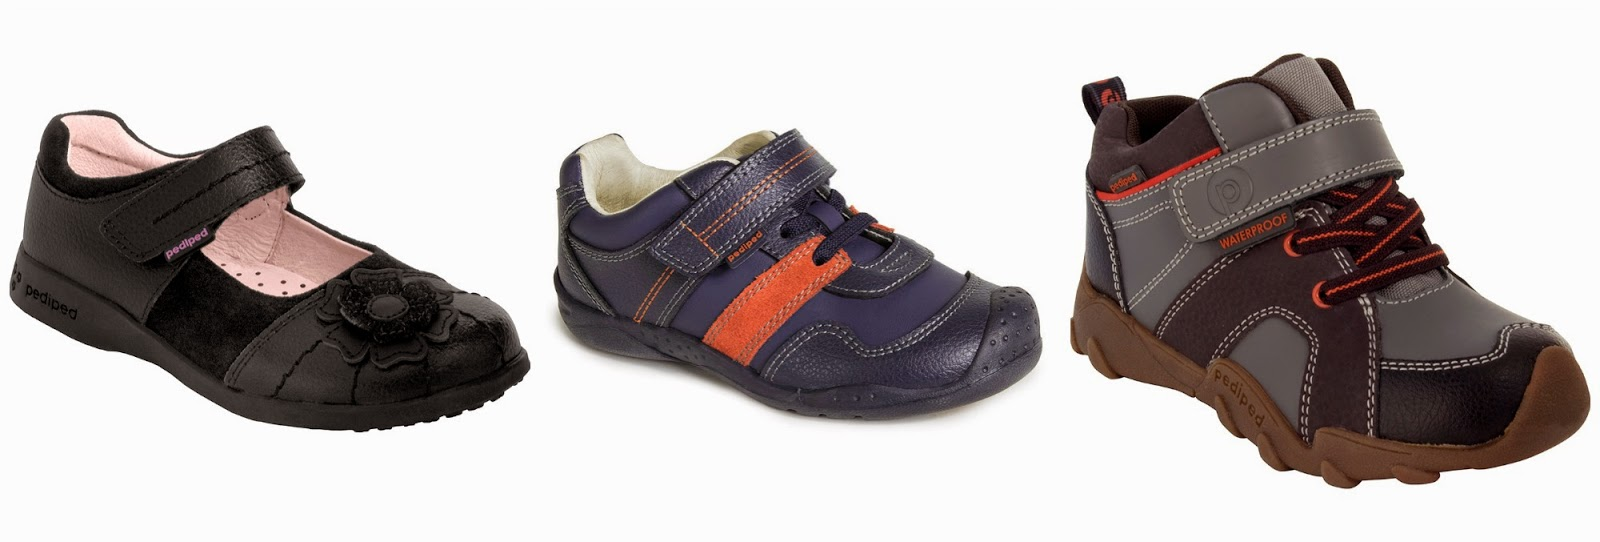 pediped flex shoes